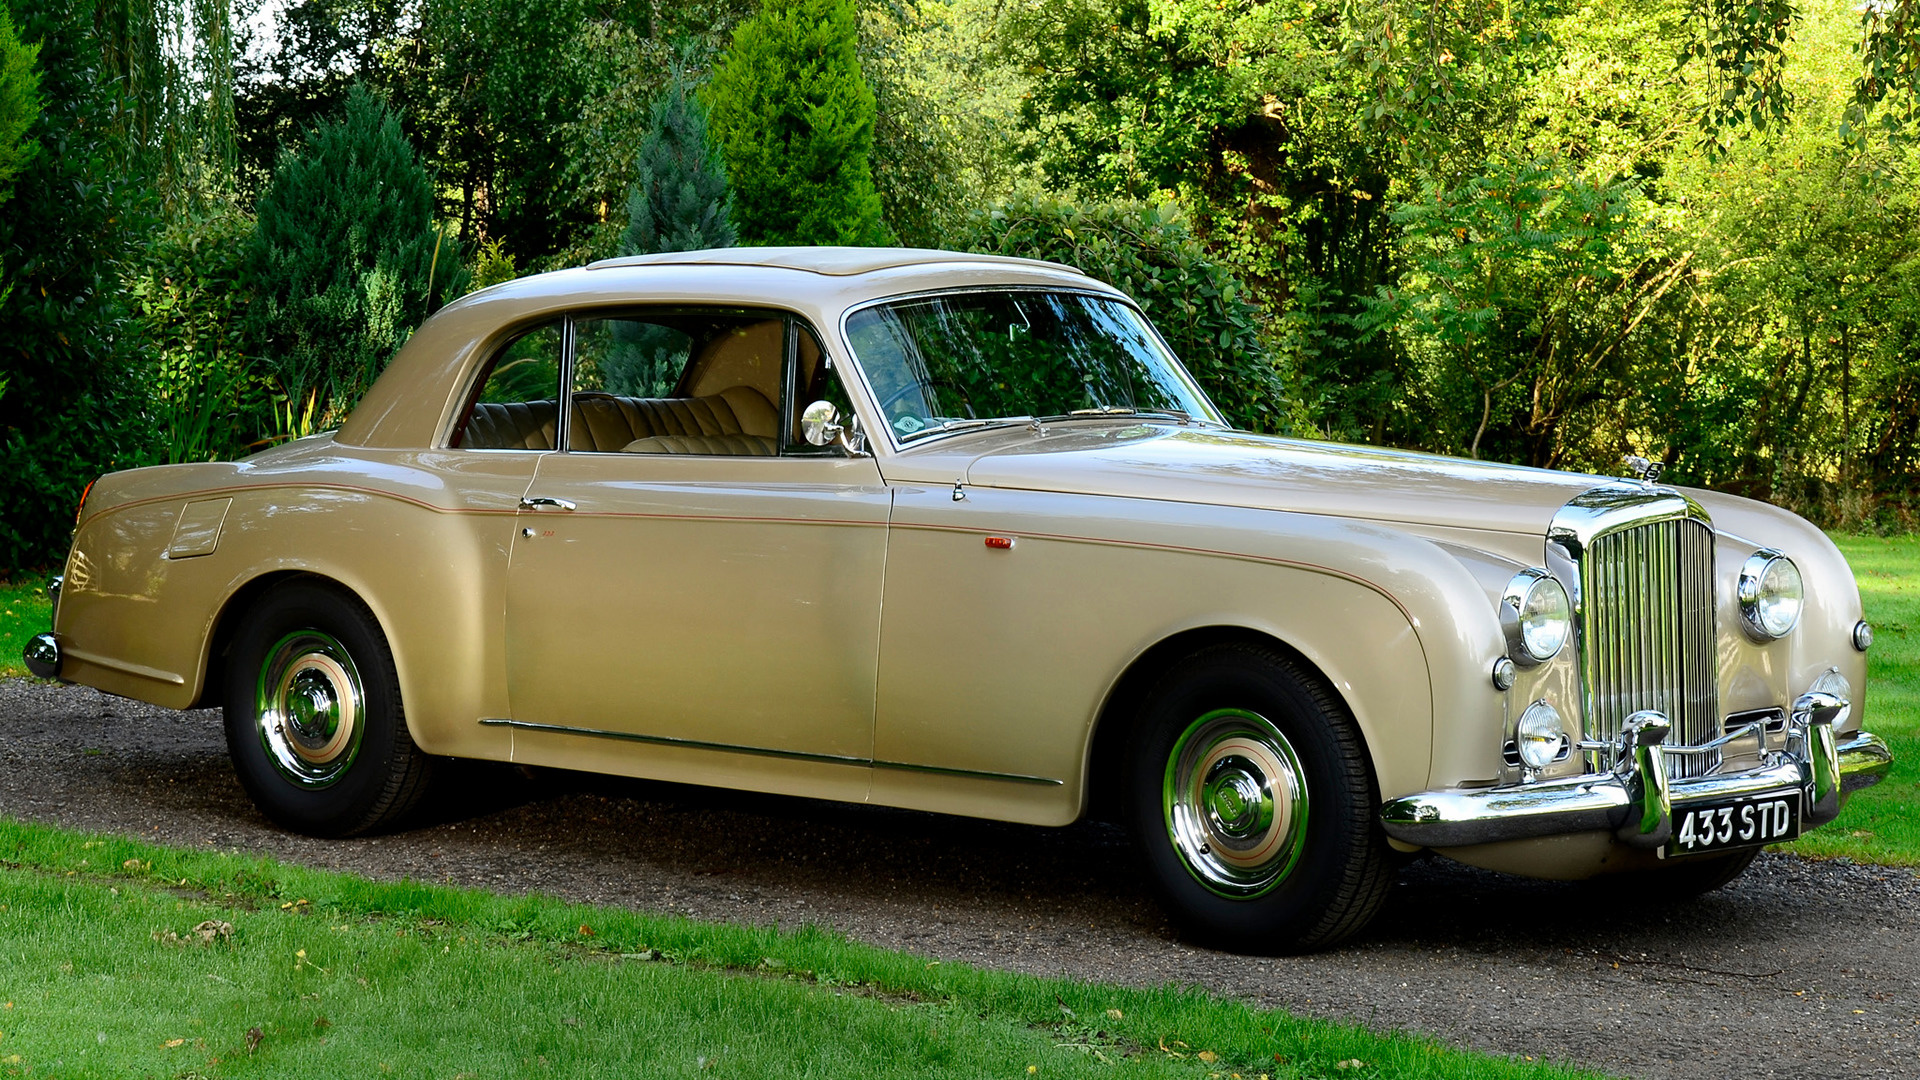 Williams Buick Gmc >> 1955 Bentley S1 Continental Fixed Head Coupe by Park Ward (UK) - Wallpapers and HD Images | Car ...